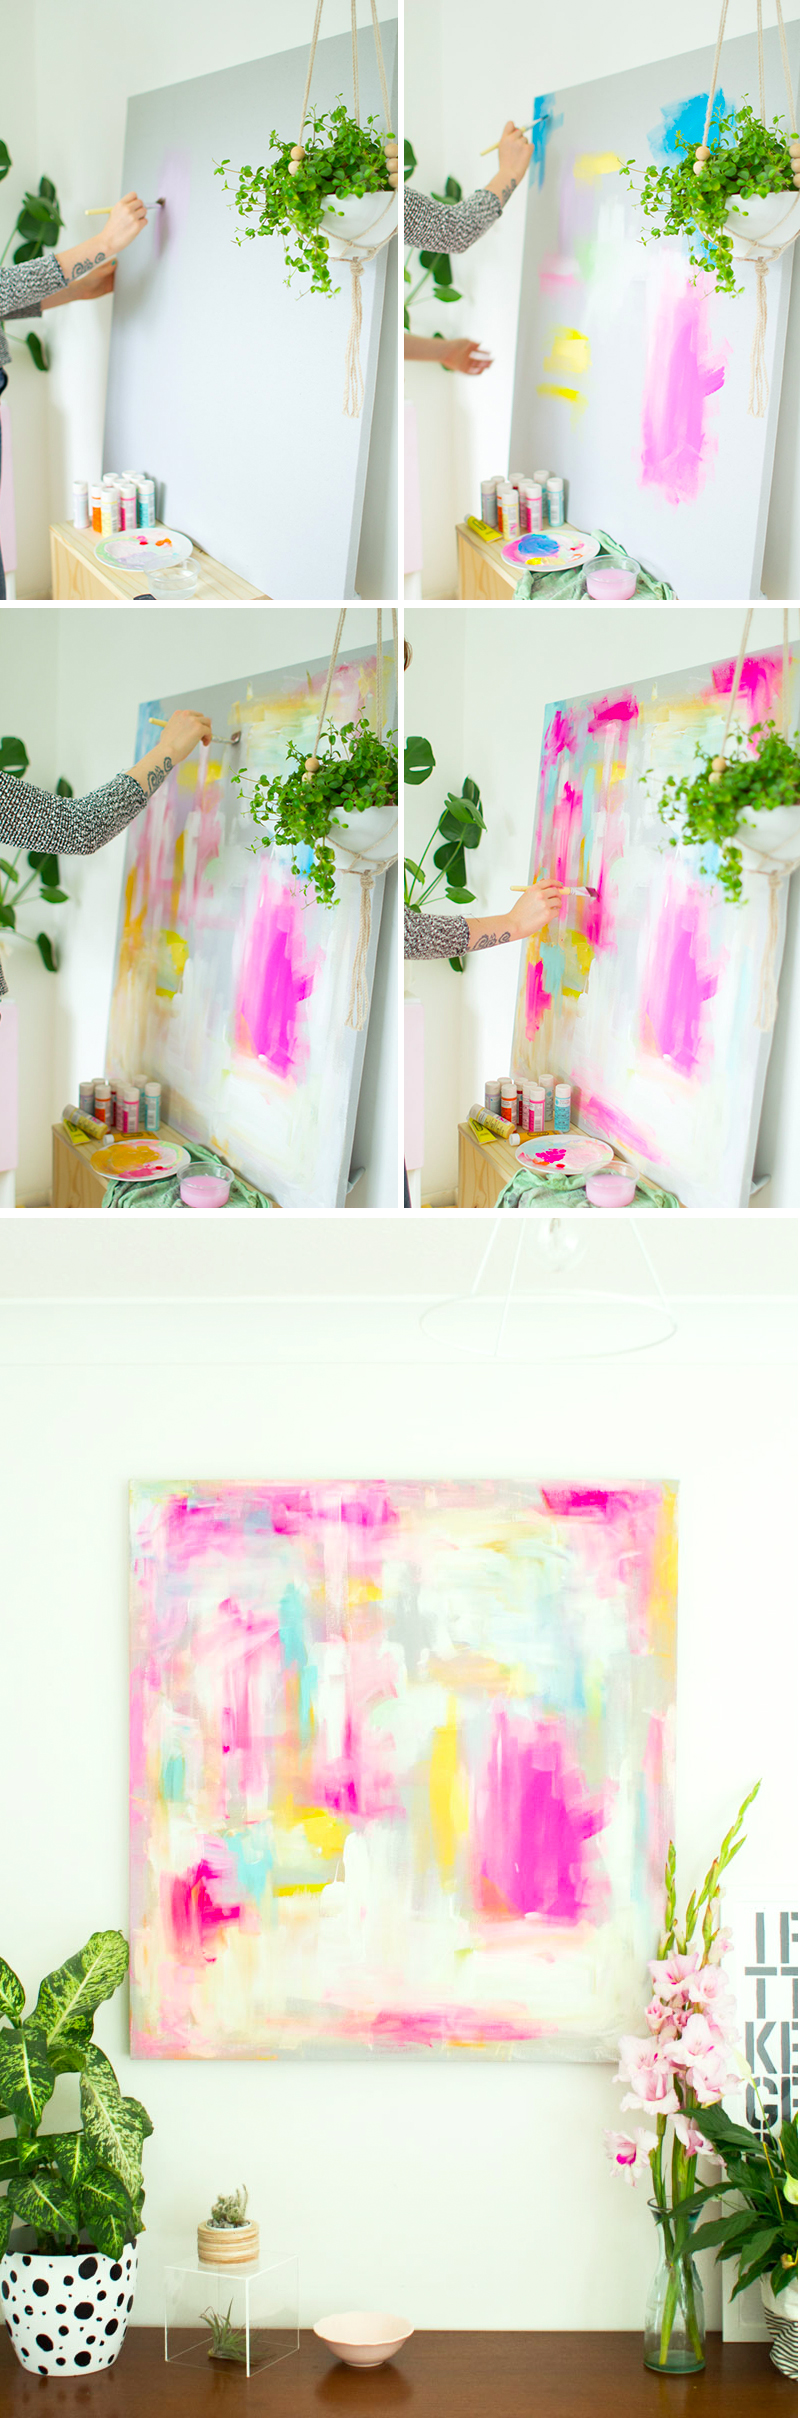 DIY Abstract Artwork Furniture Hacks Fall For DIY